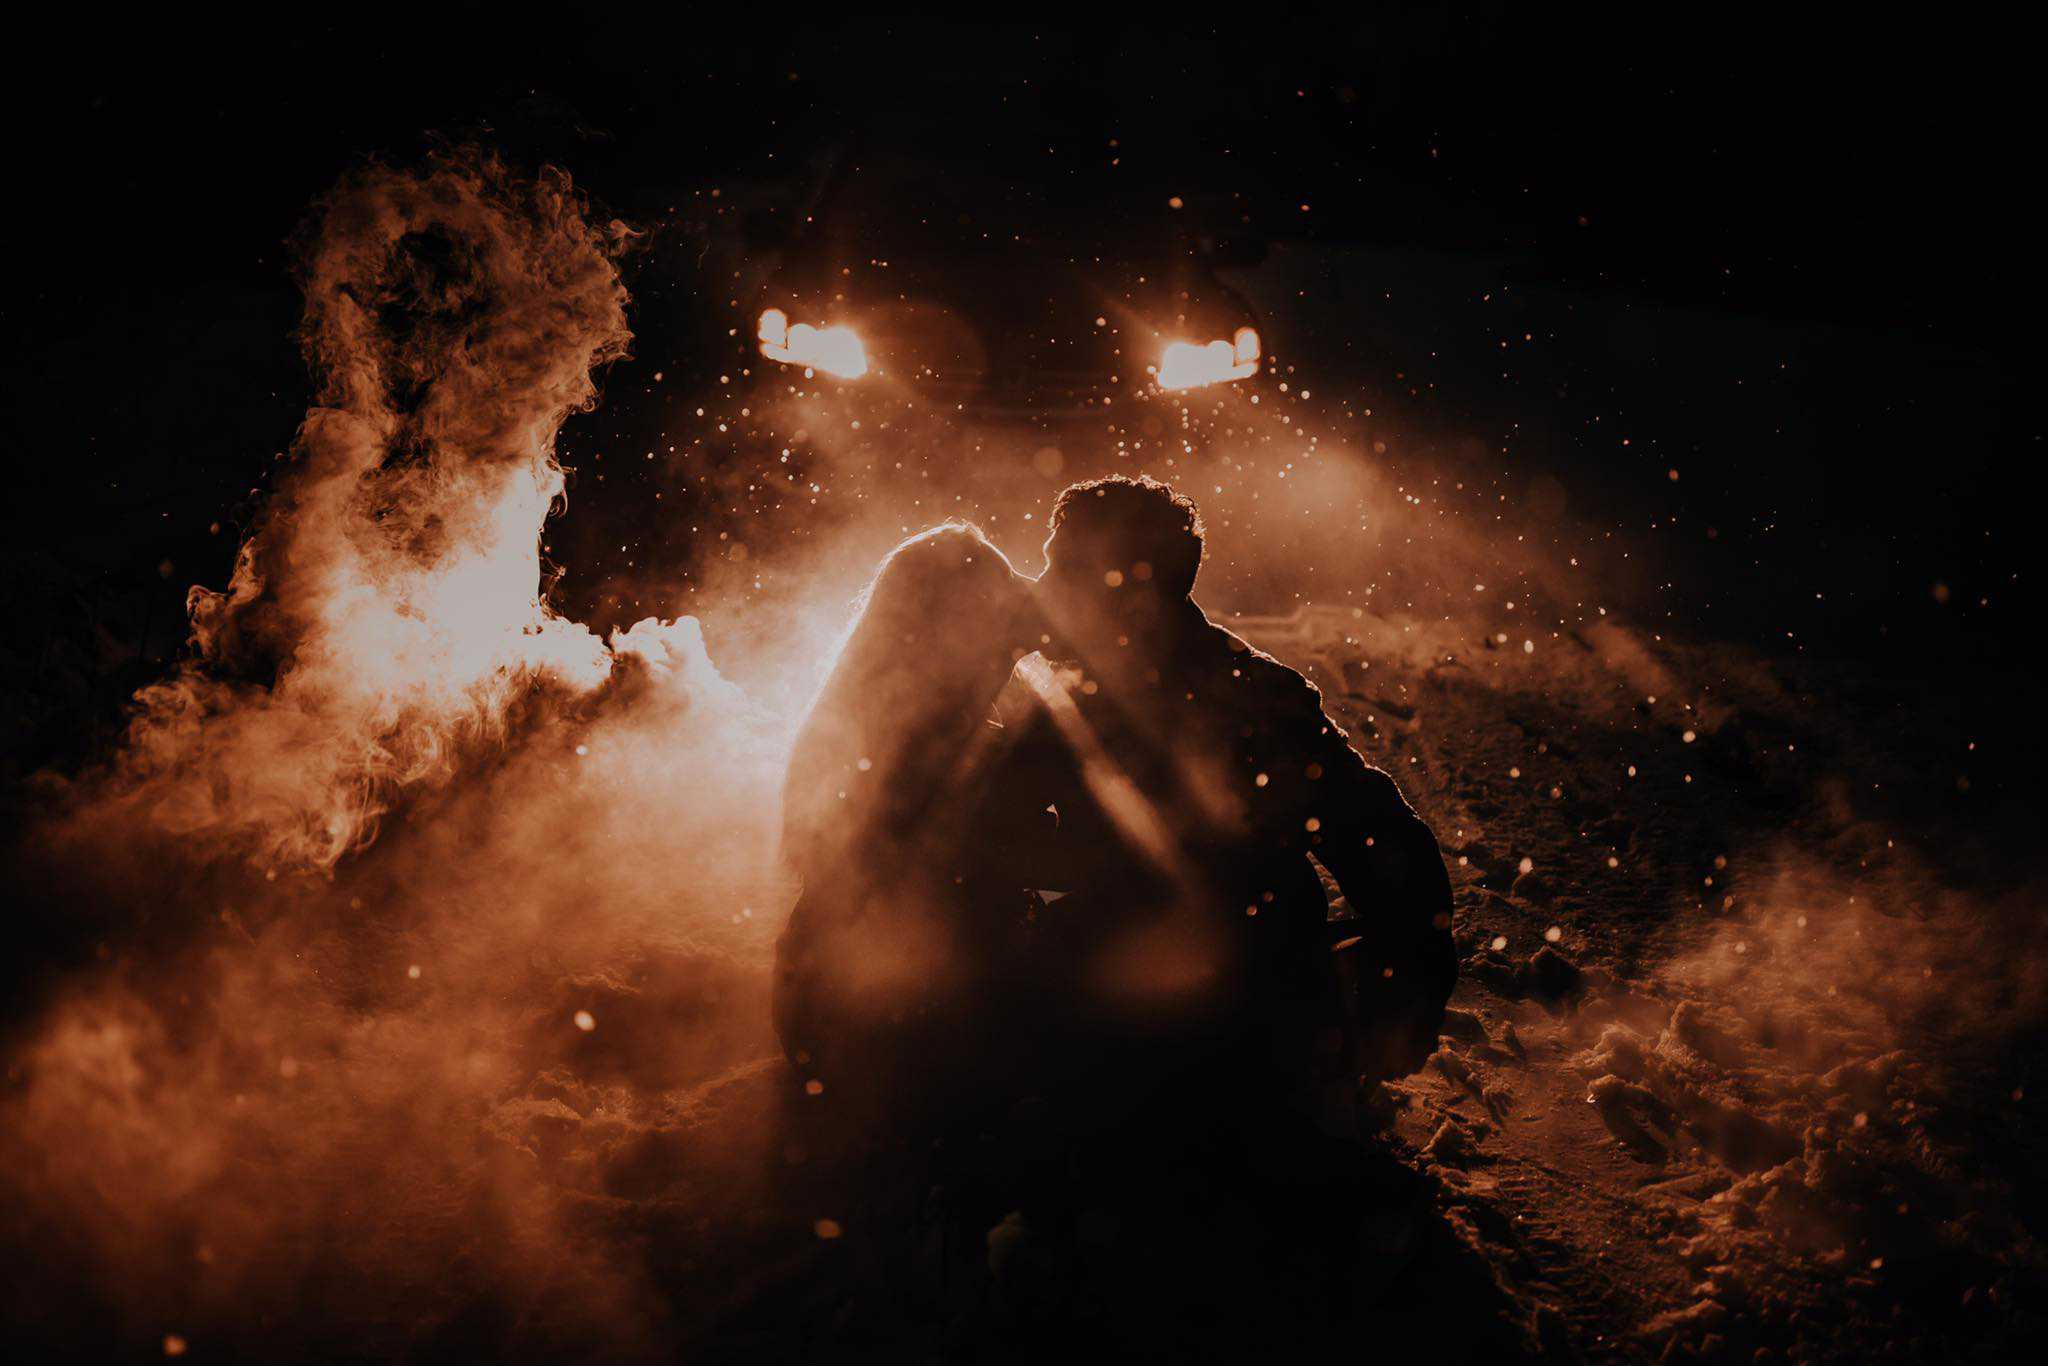 The most creative & unique Smoke Bomb Photos on LLF